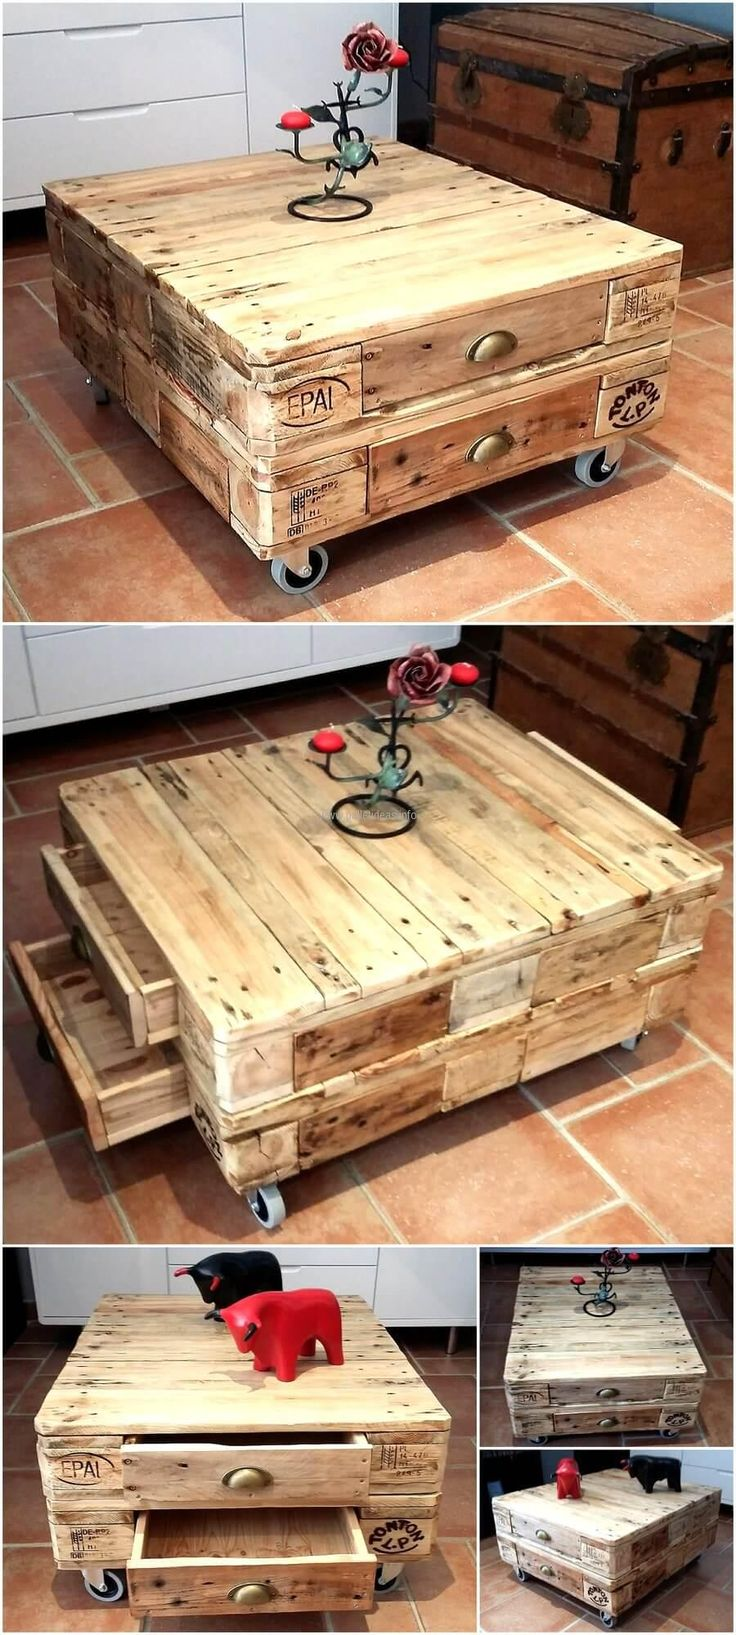 Little Pallets Coffee Table on Wheels with